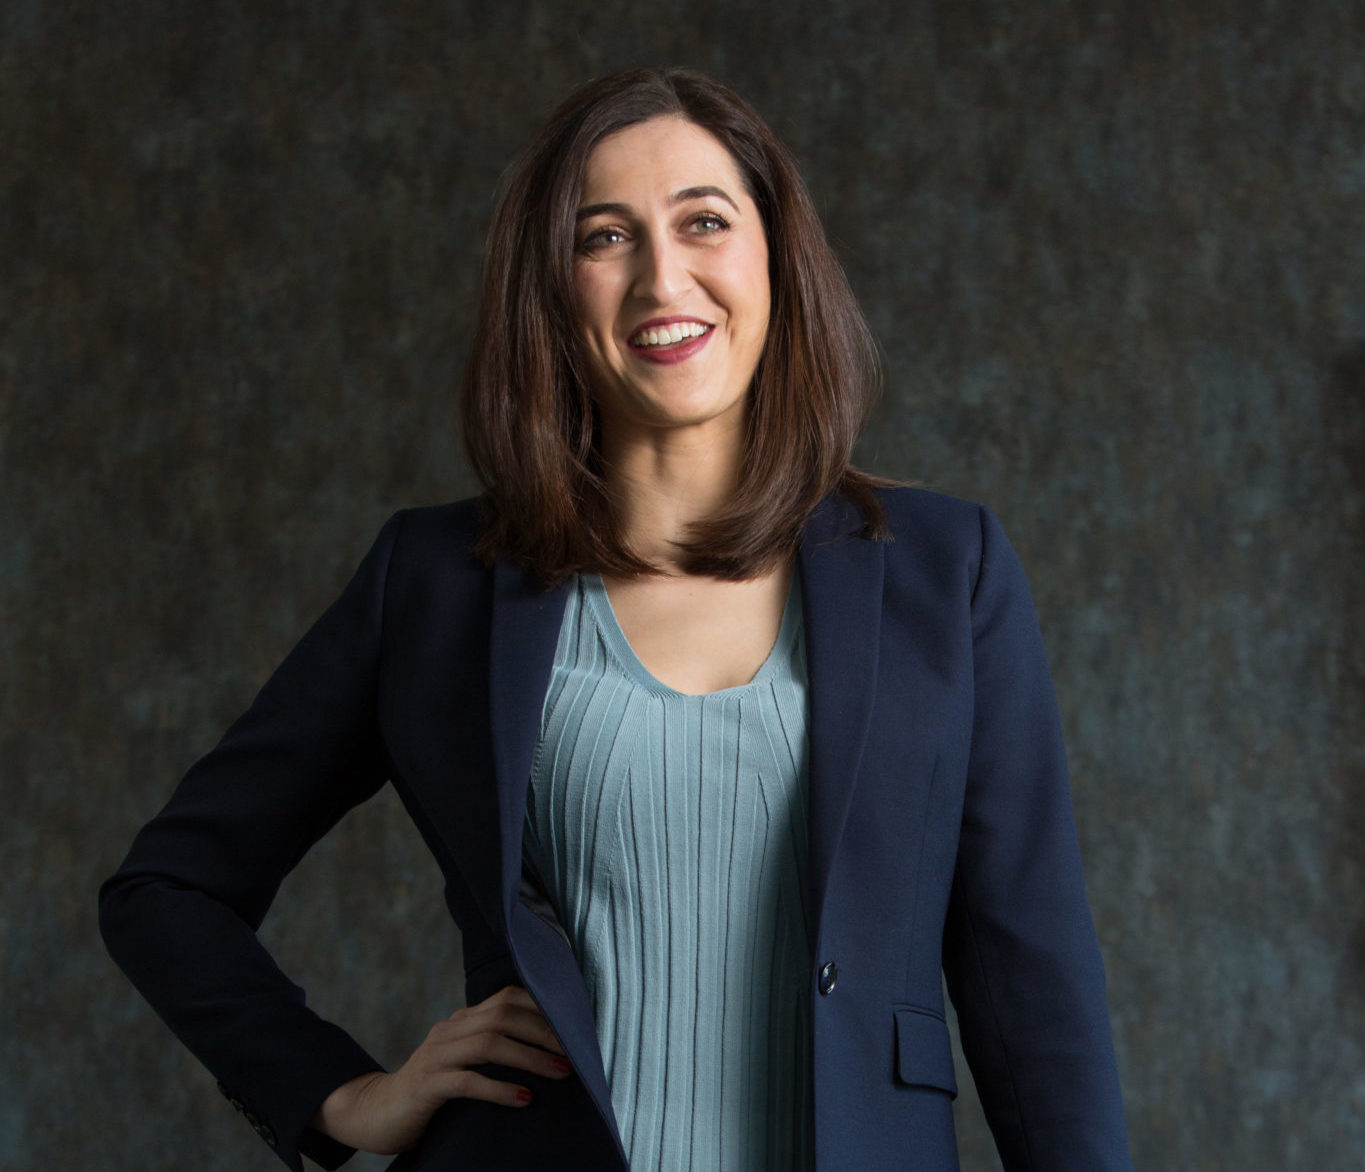 Equality in the workplace: Shirin Lajevardi